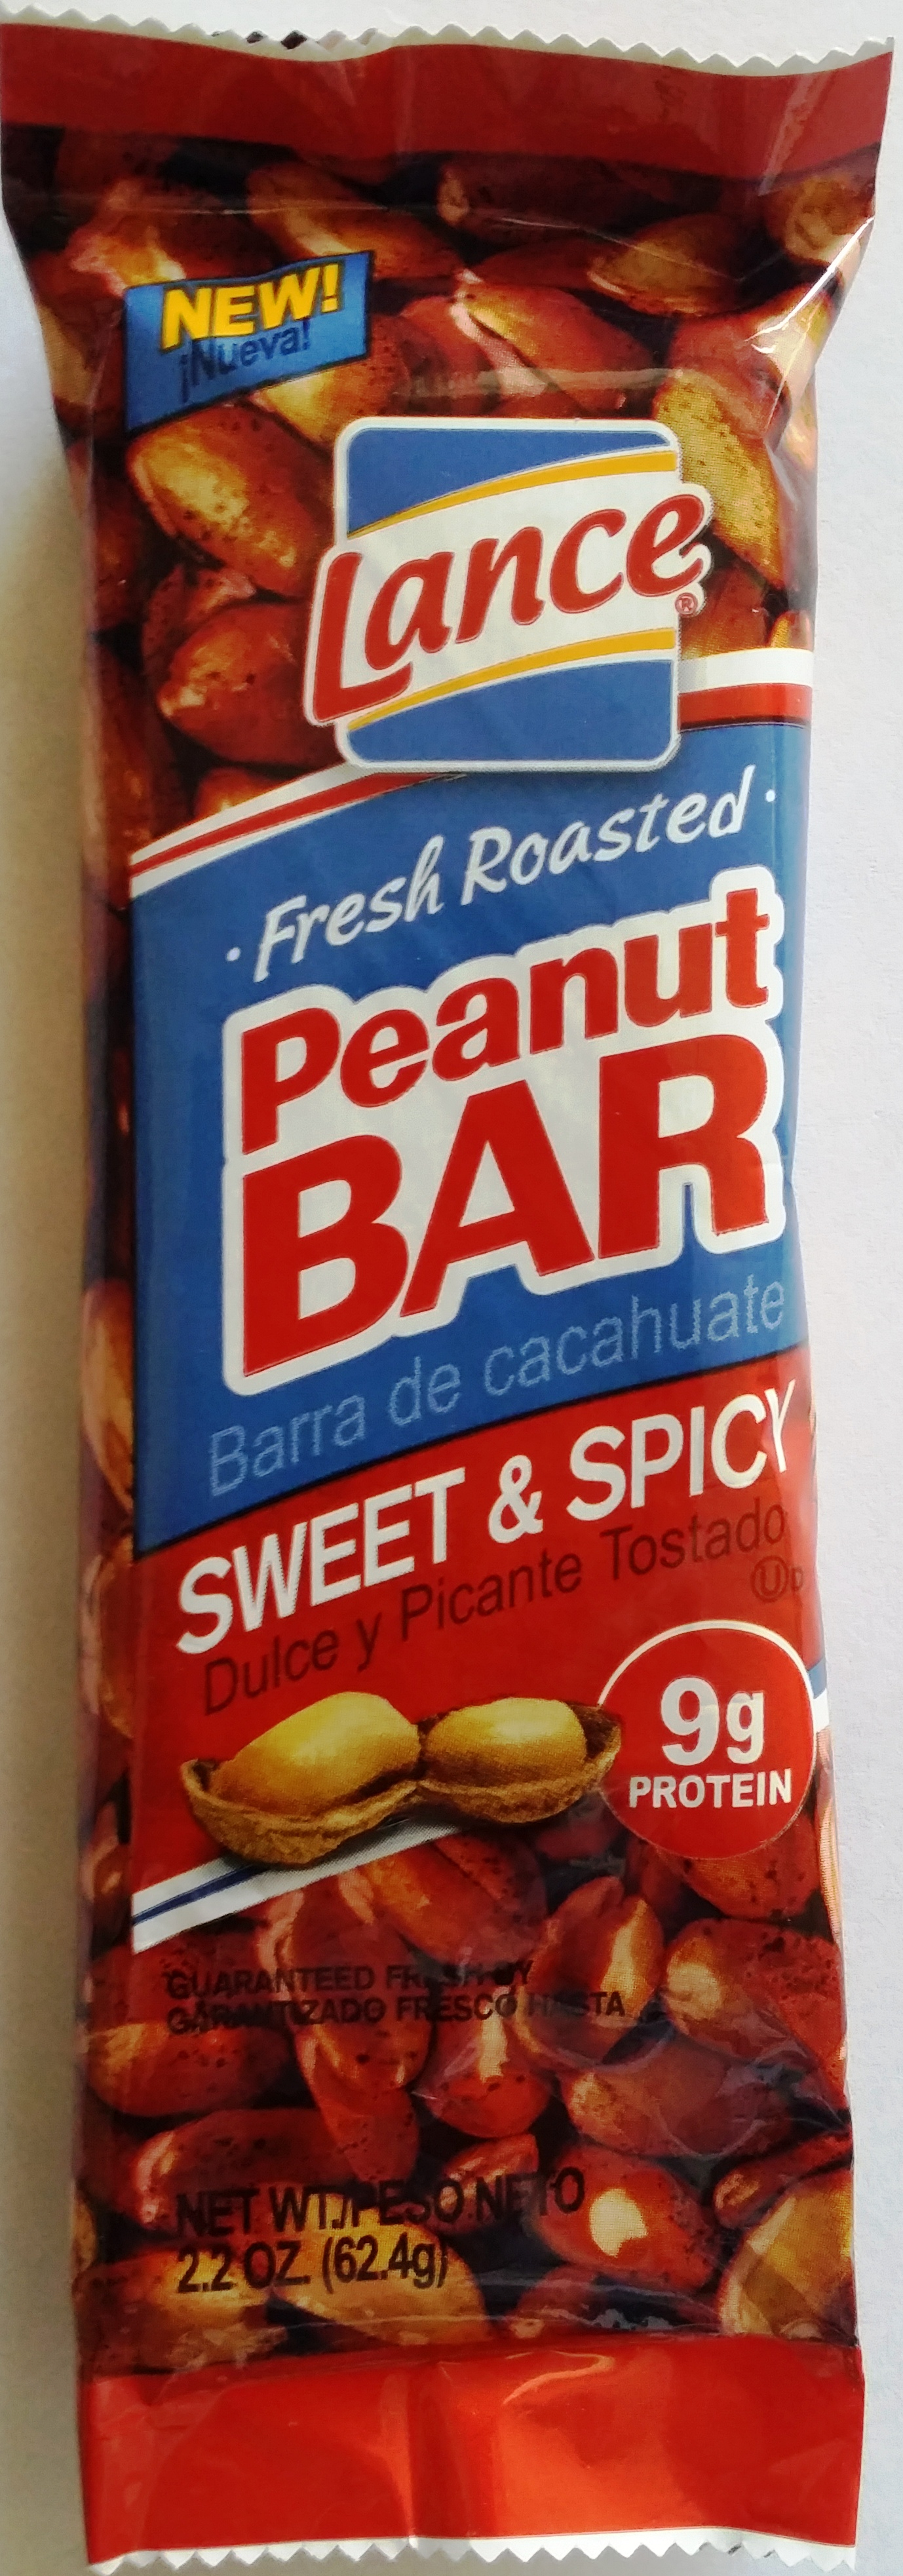 Lance Sweet n Spicy Peanut Bar